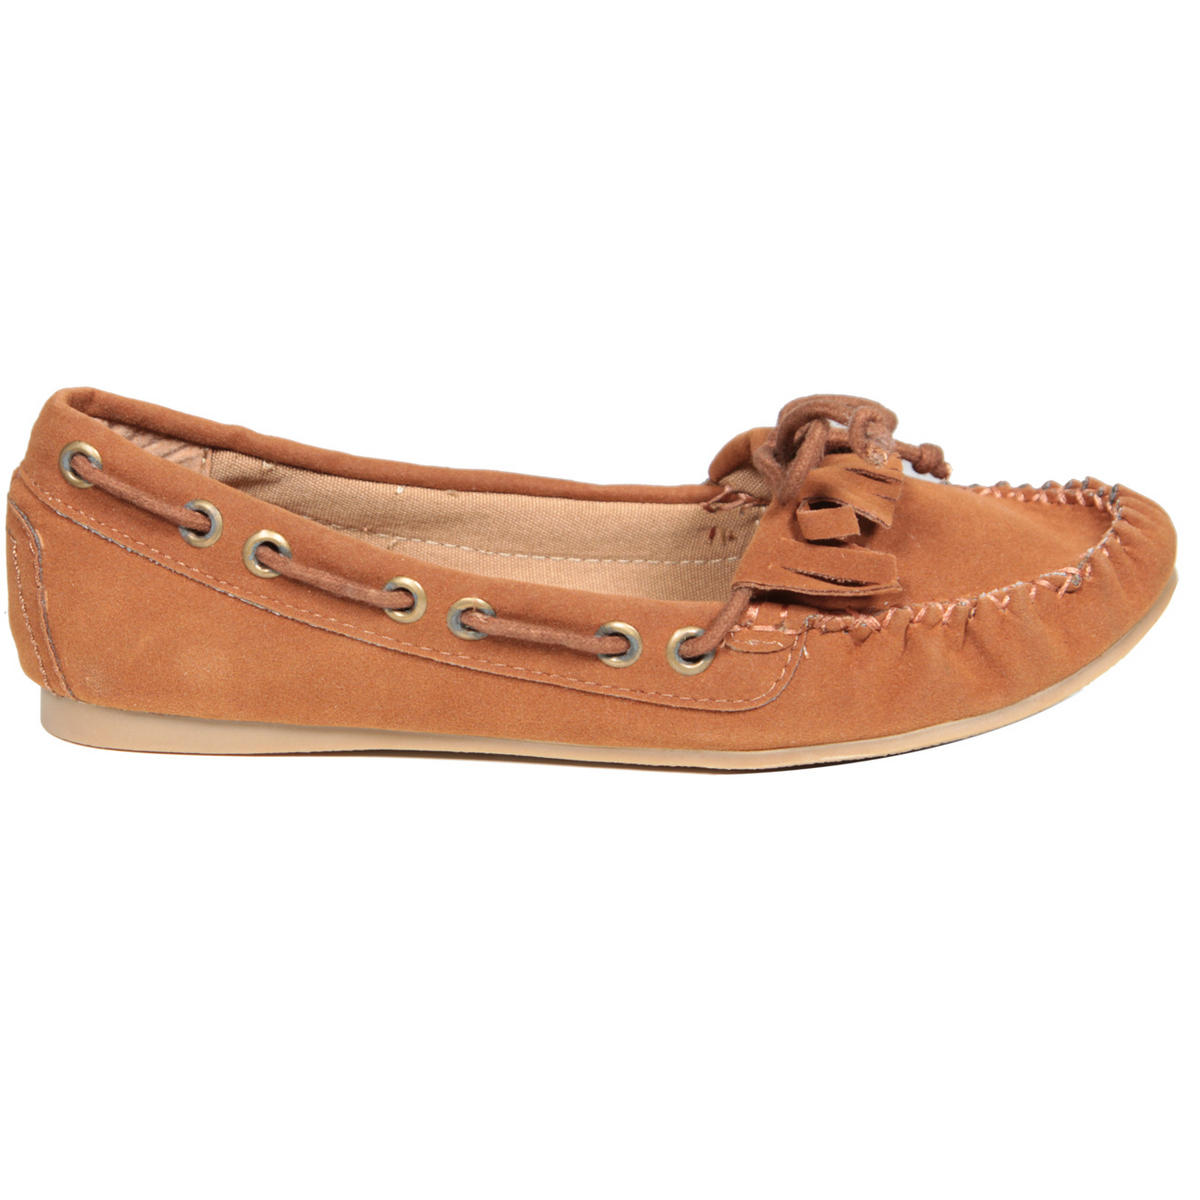 Tan Suedette Loafer Shoe Preview